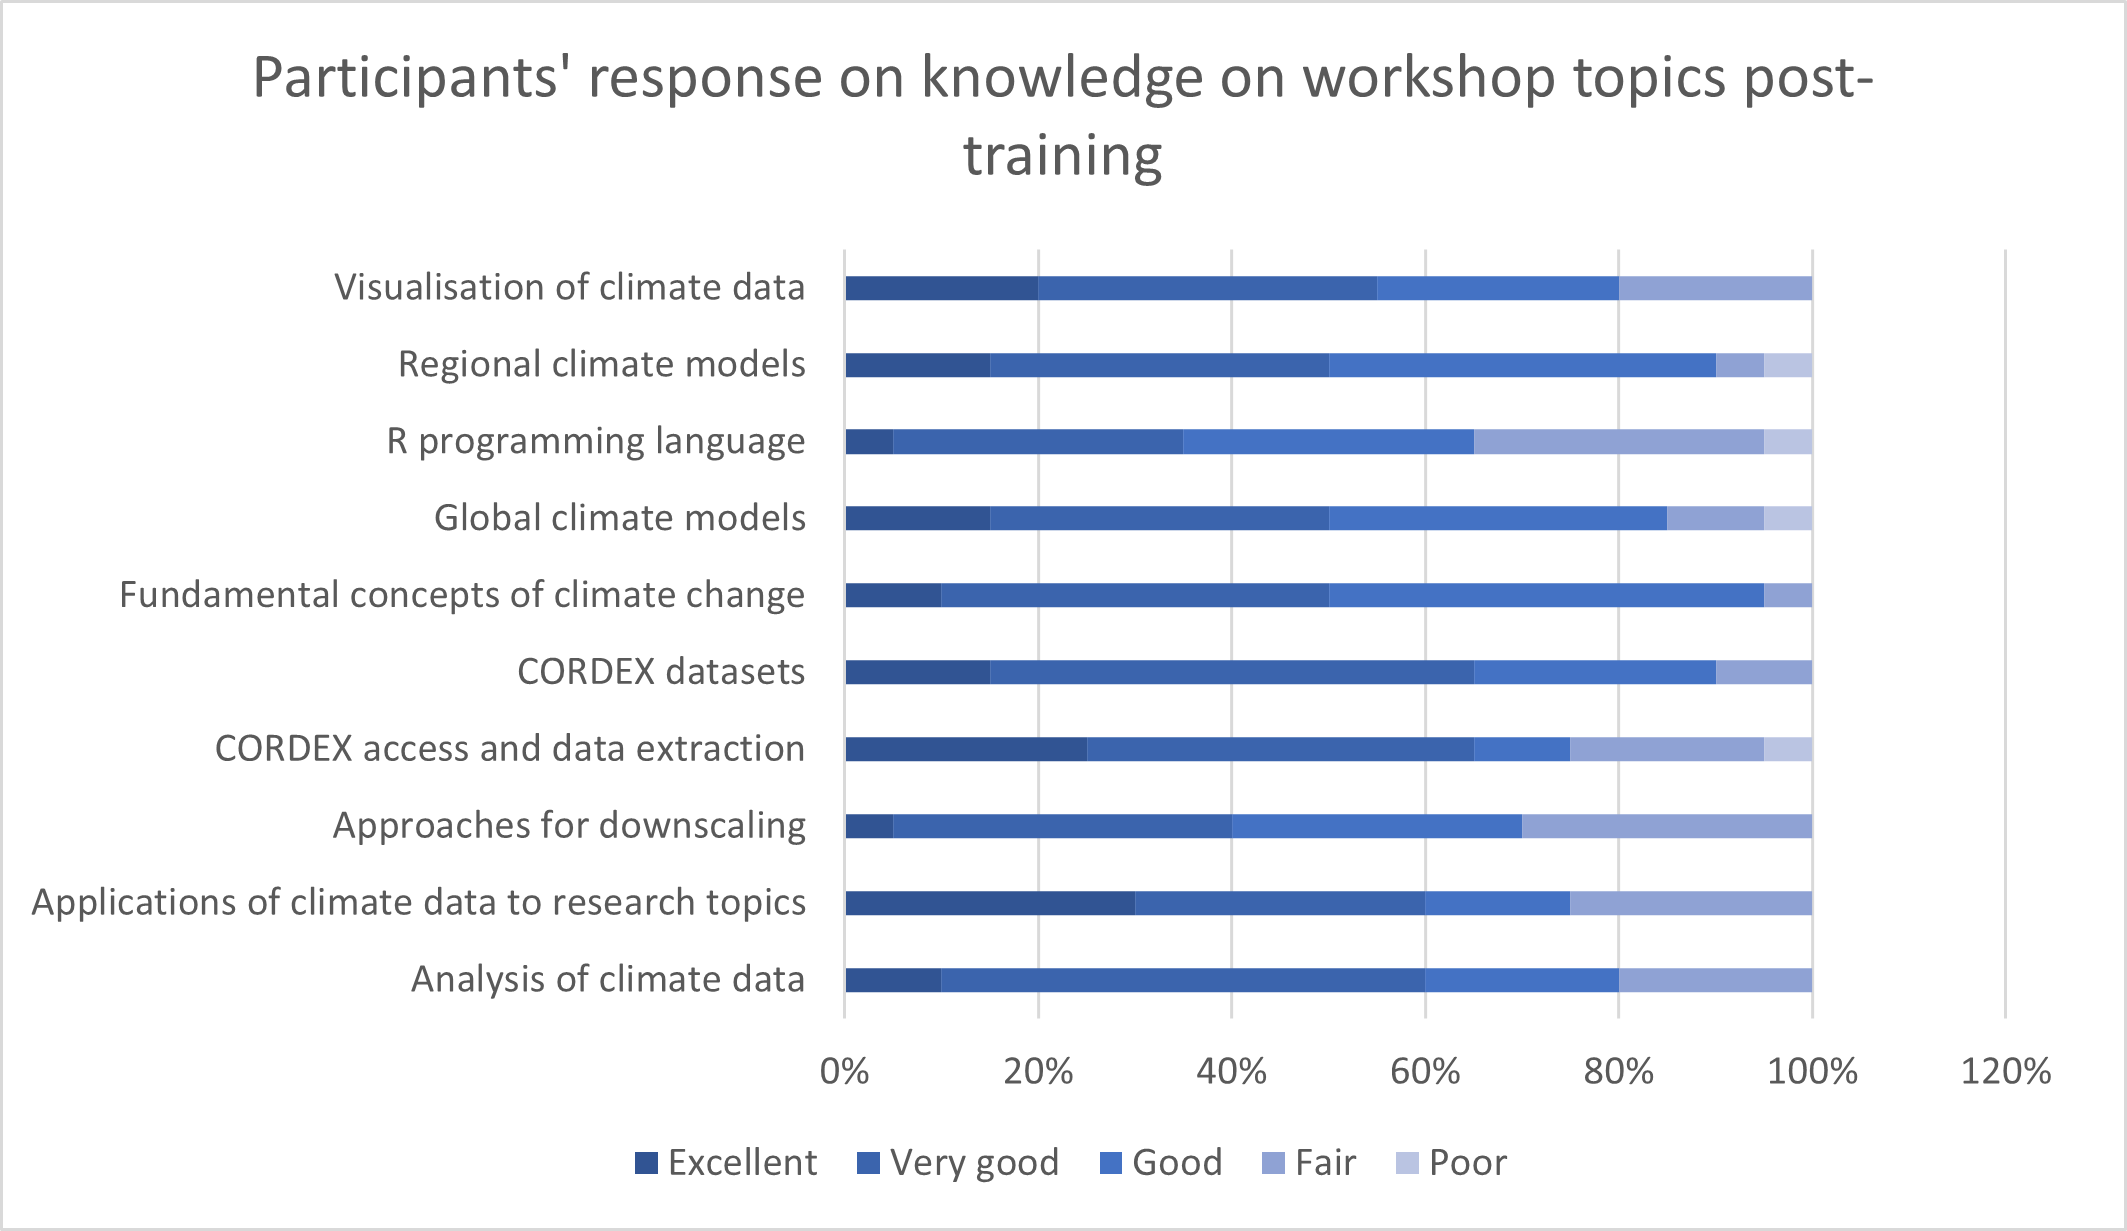 Participants' response on knowledge